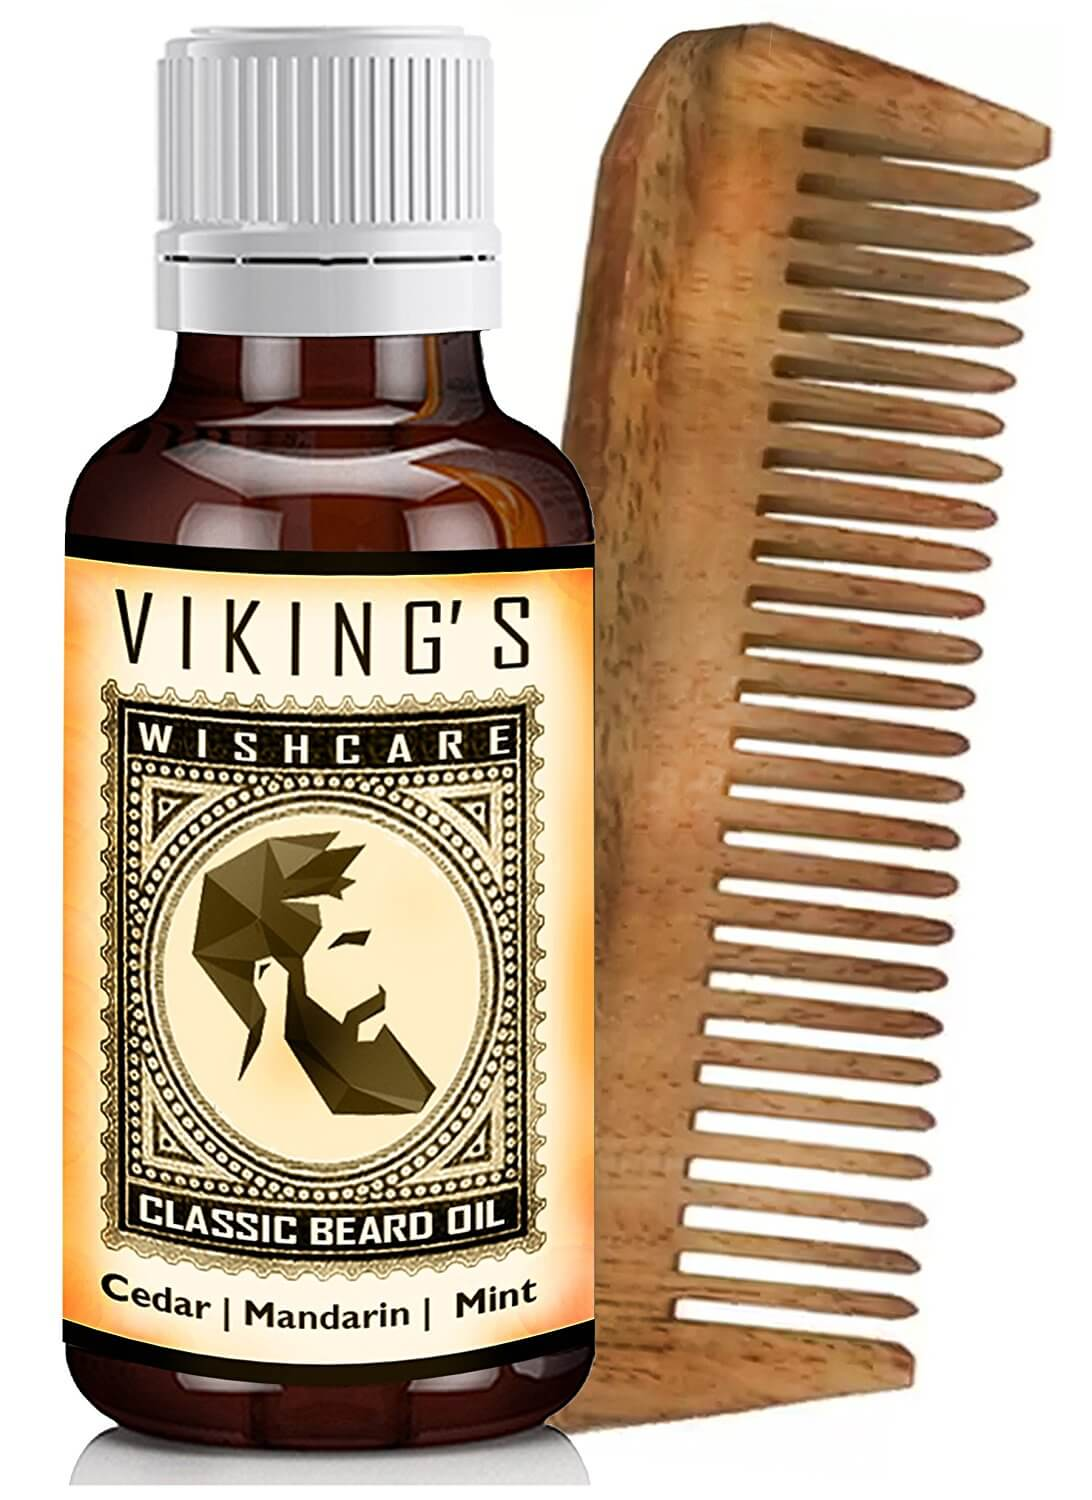 10 Best Beard Growth Oils in India (2019) - Beard Grooming